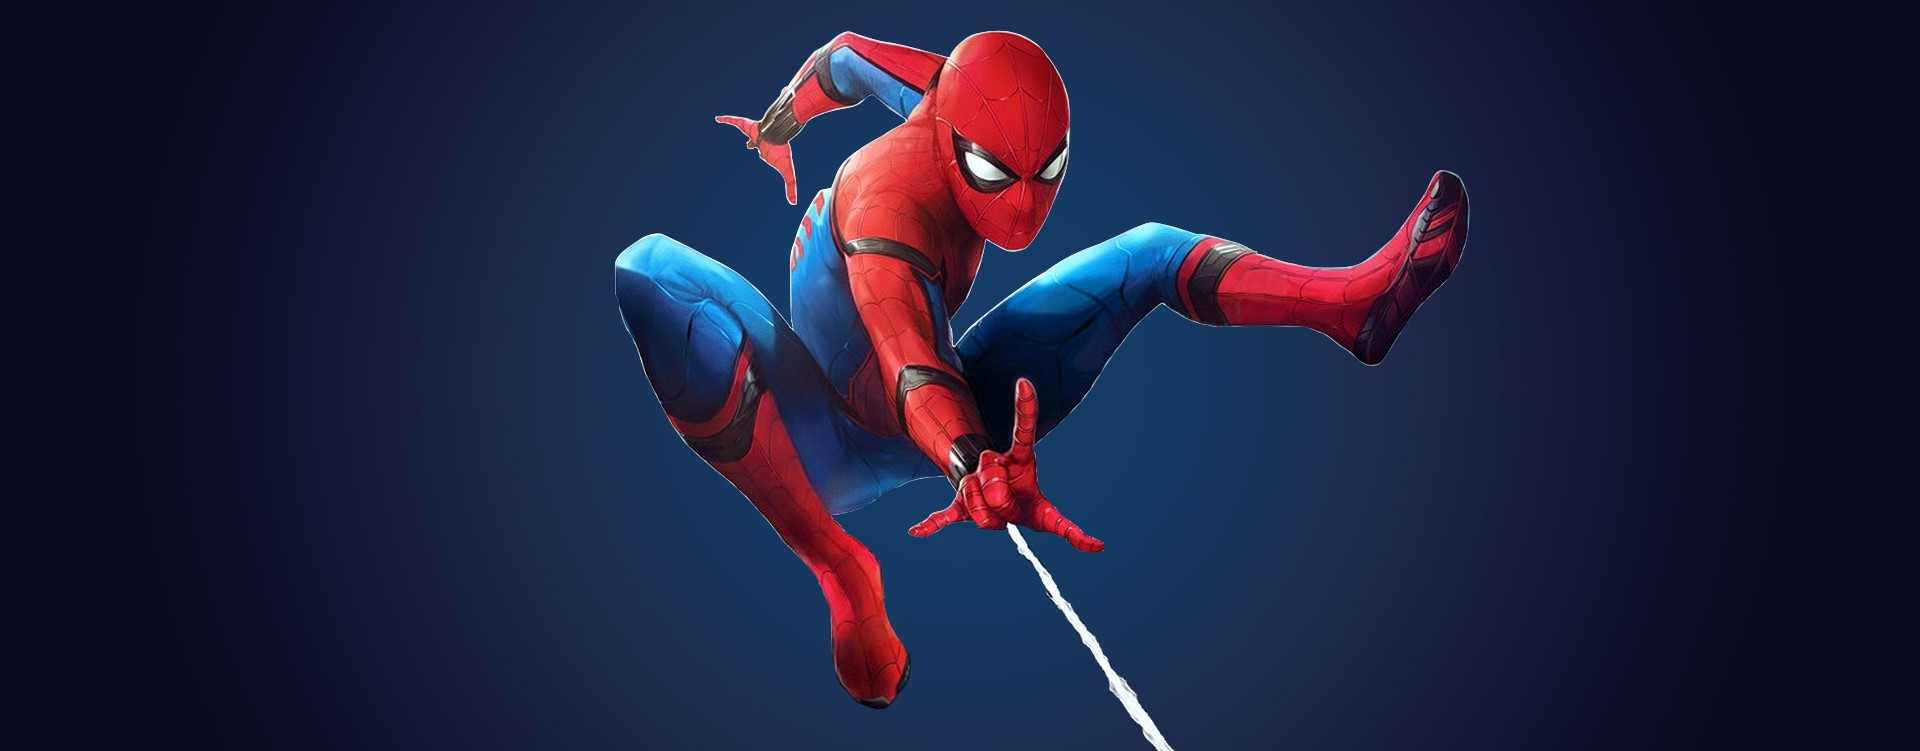 Spider-man: Homecoming Cosplay Costume